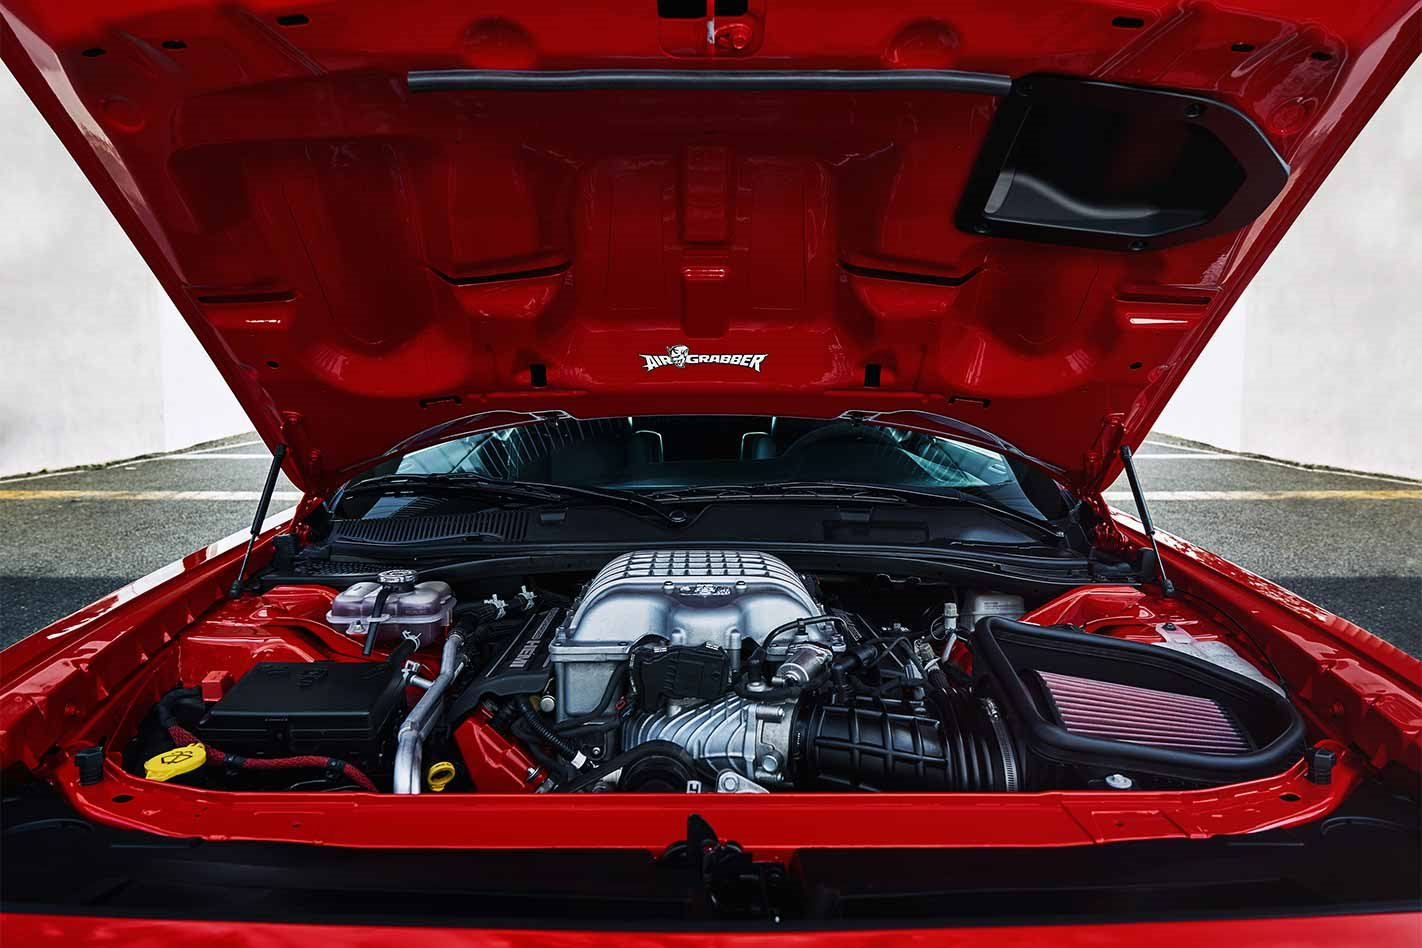 2018 Dodge Challenger SRT Demon engine